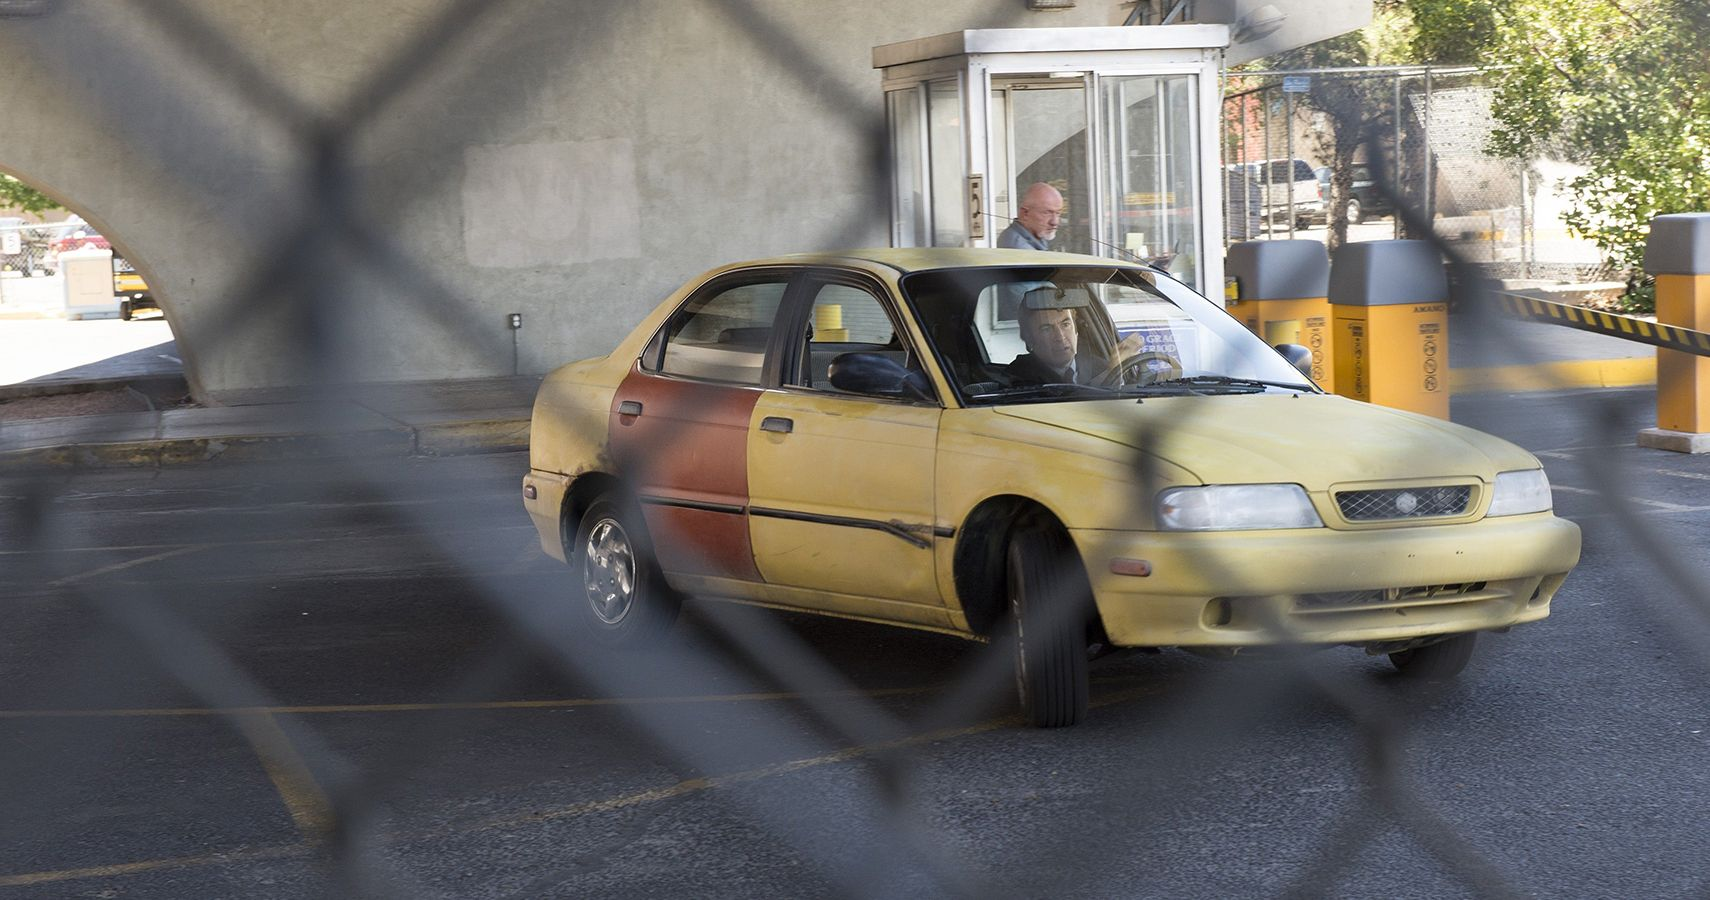 Here's What Happened To The Hideous Suzuki Esteem From Better Call Saul